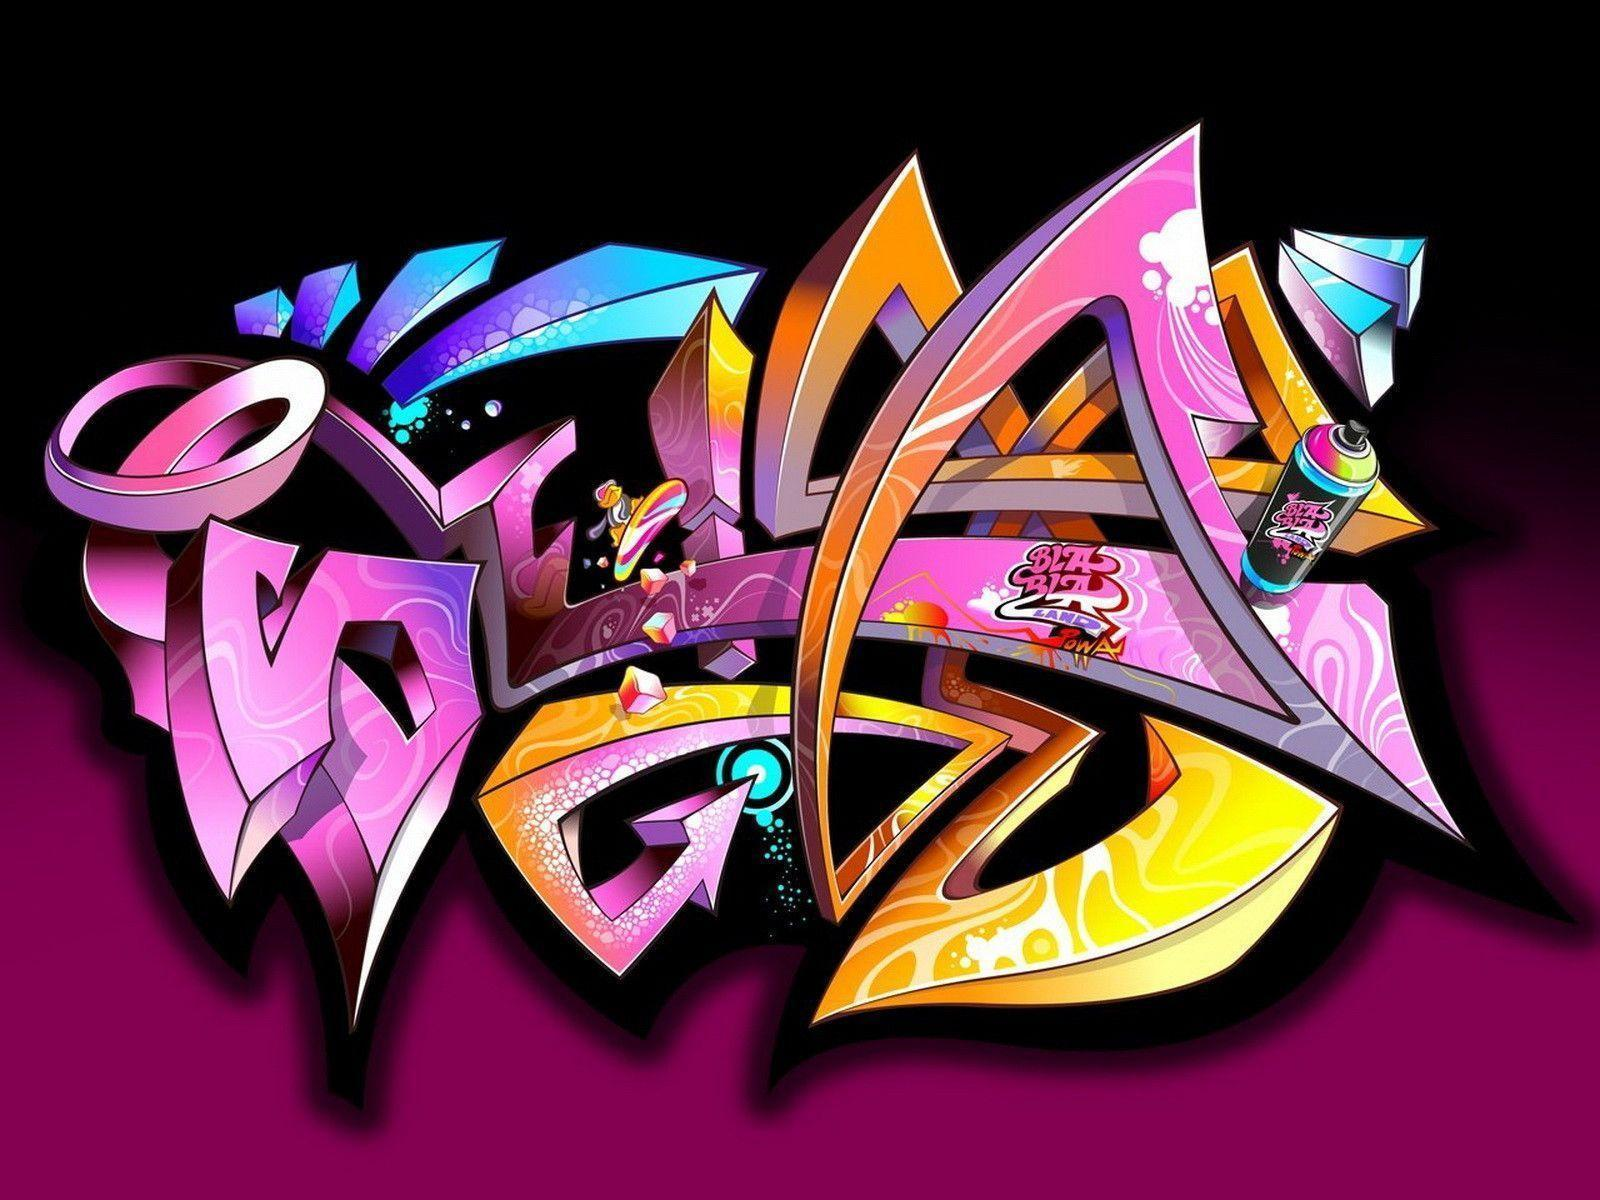 Grafiti Wallpapers Wallpaper Cave